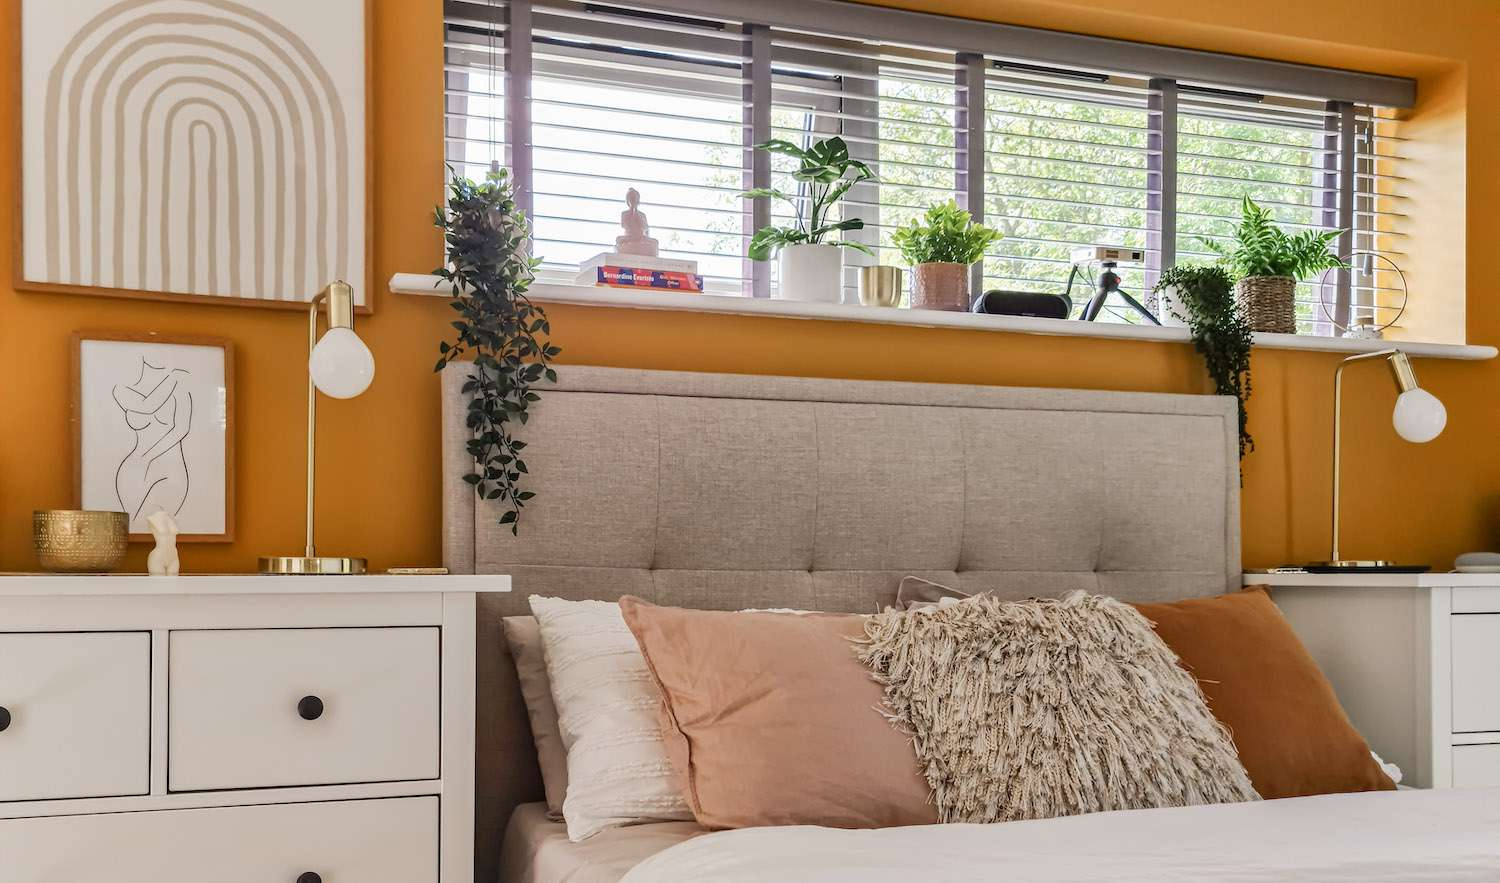 bedroom with mustard color back wall, modern decor